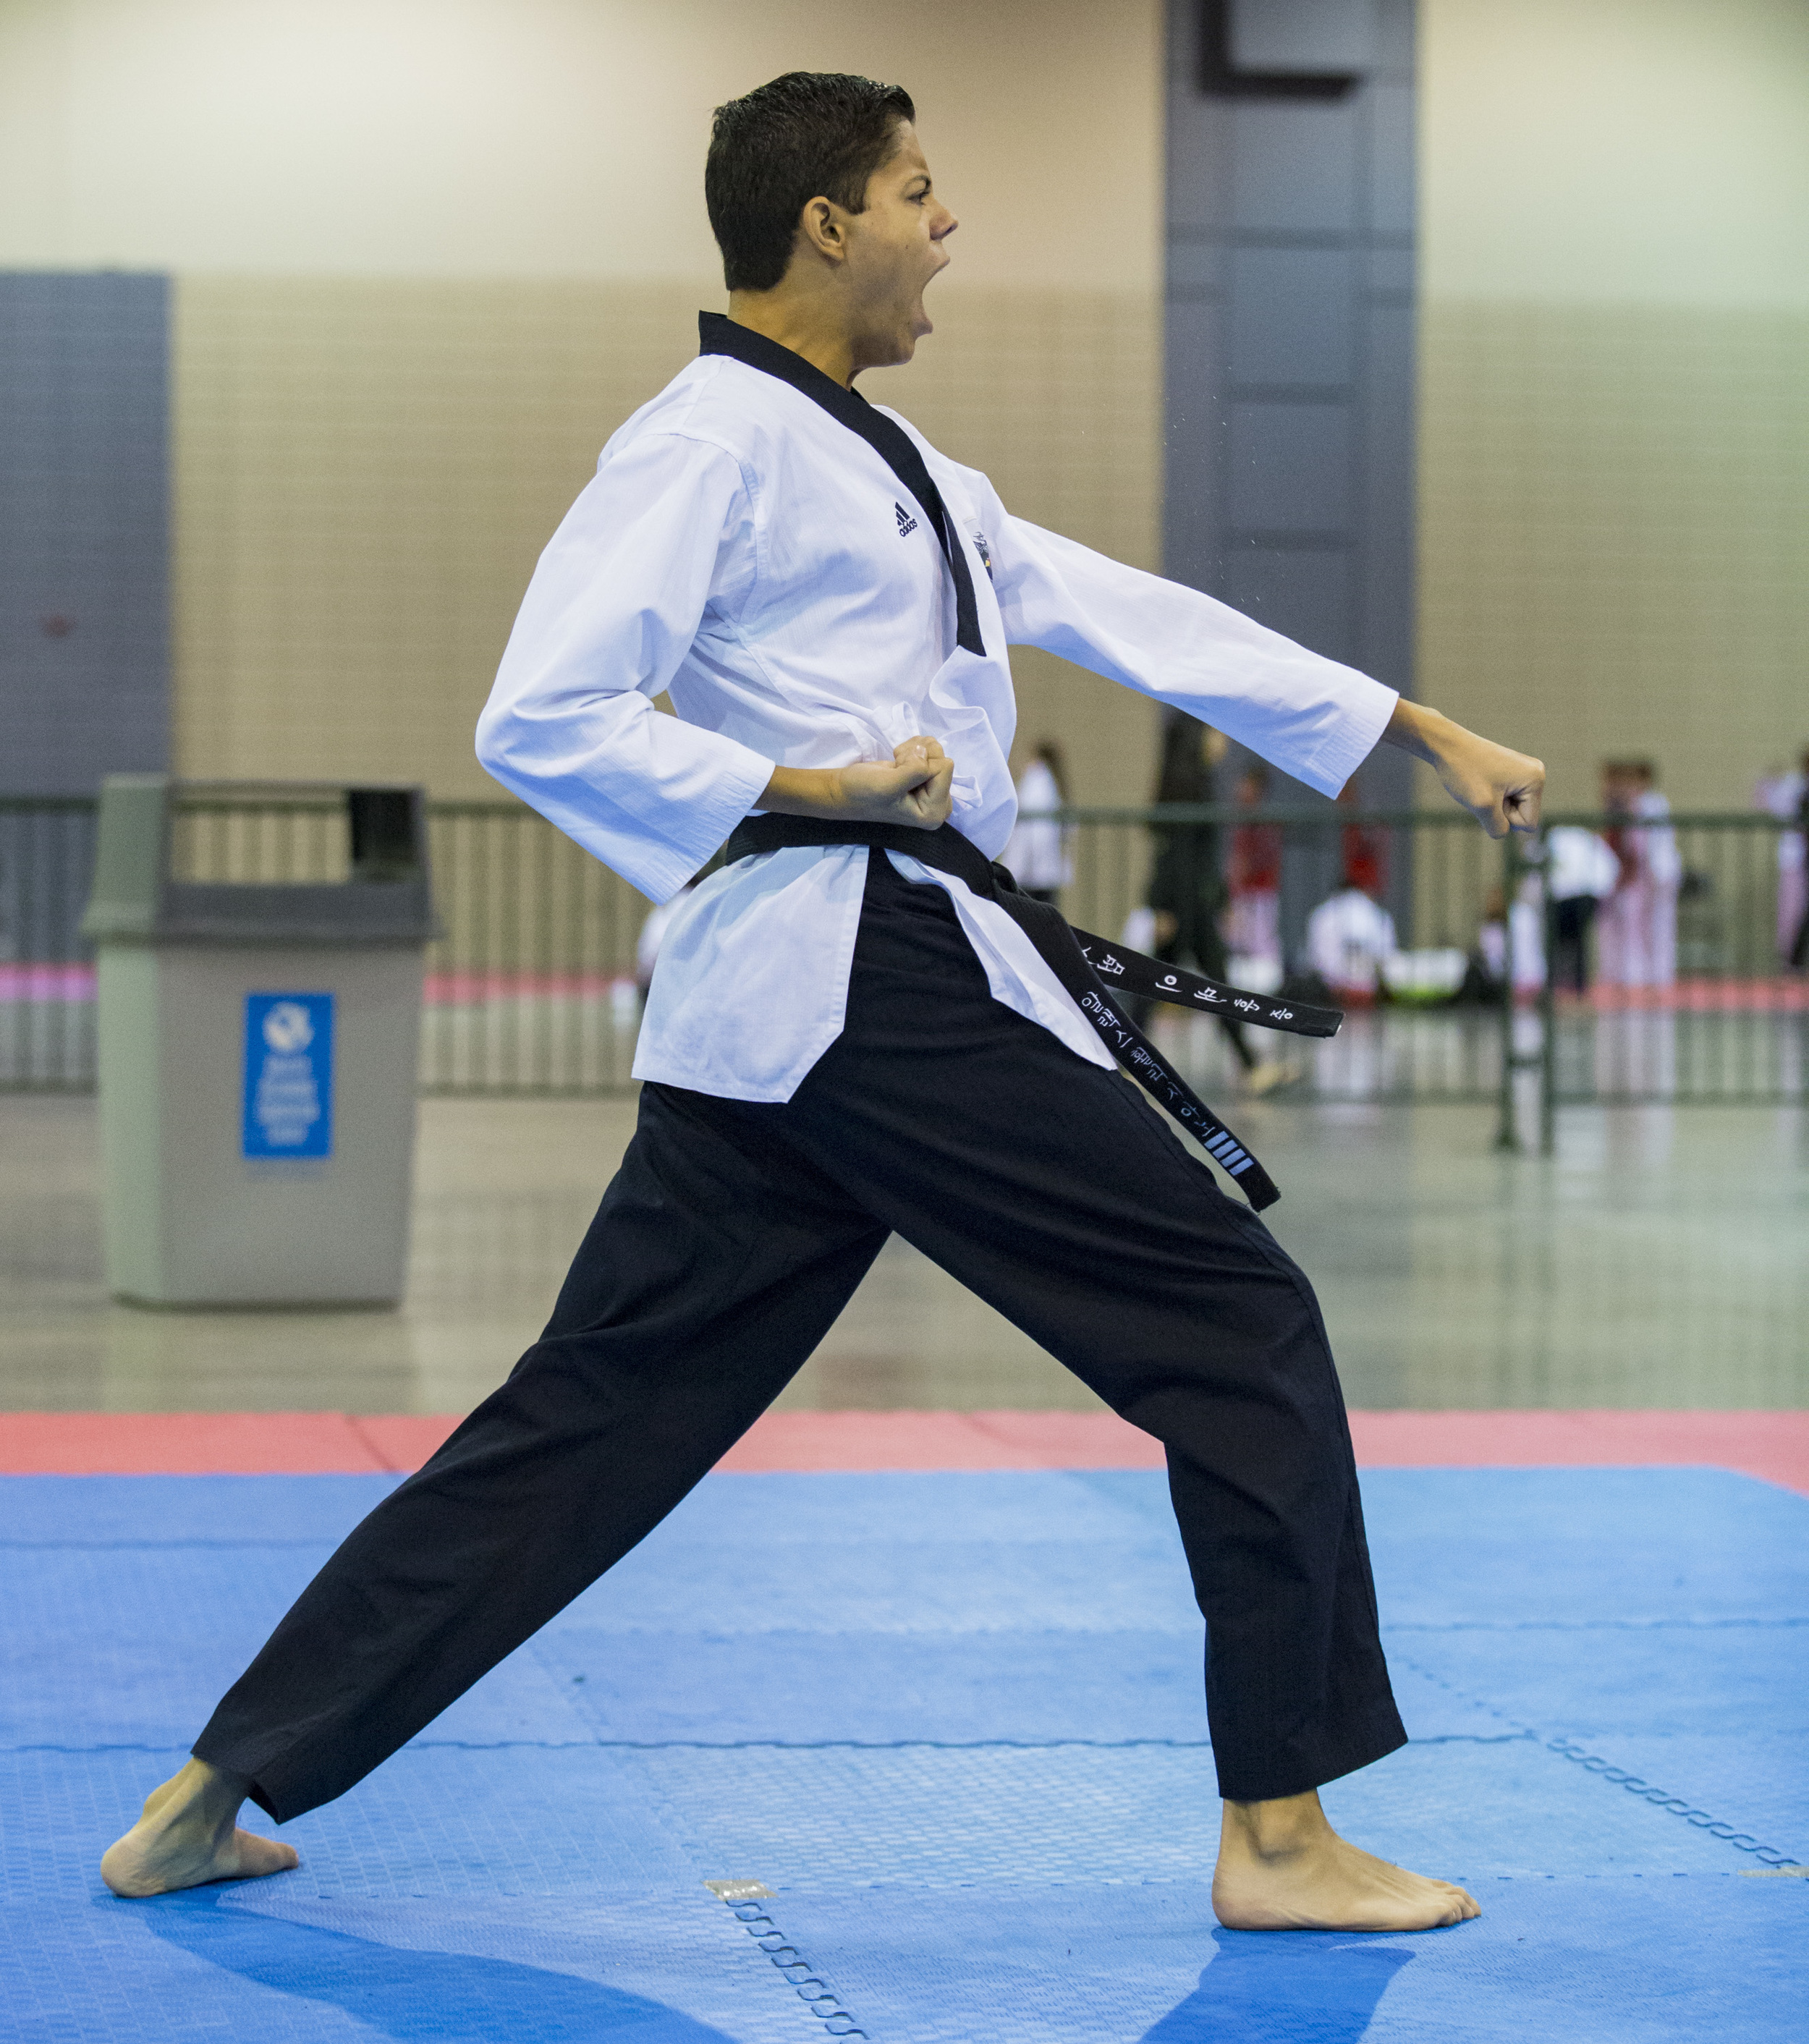 Alex Feliciano Negron competes in the under 30 world class black belt poomsae preliminaries during the USA Taekwondo National Championships held in the Greater Richmond Convention Center in Richmond, Va. on Friday, July 8, 2016.